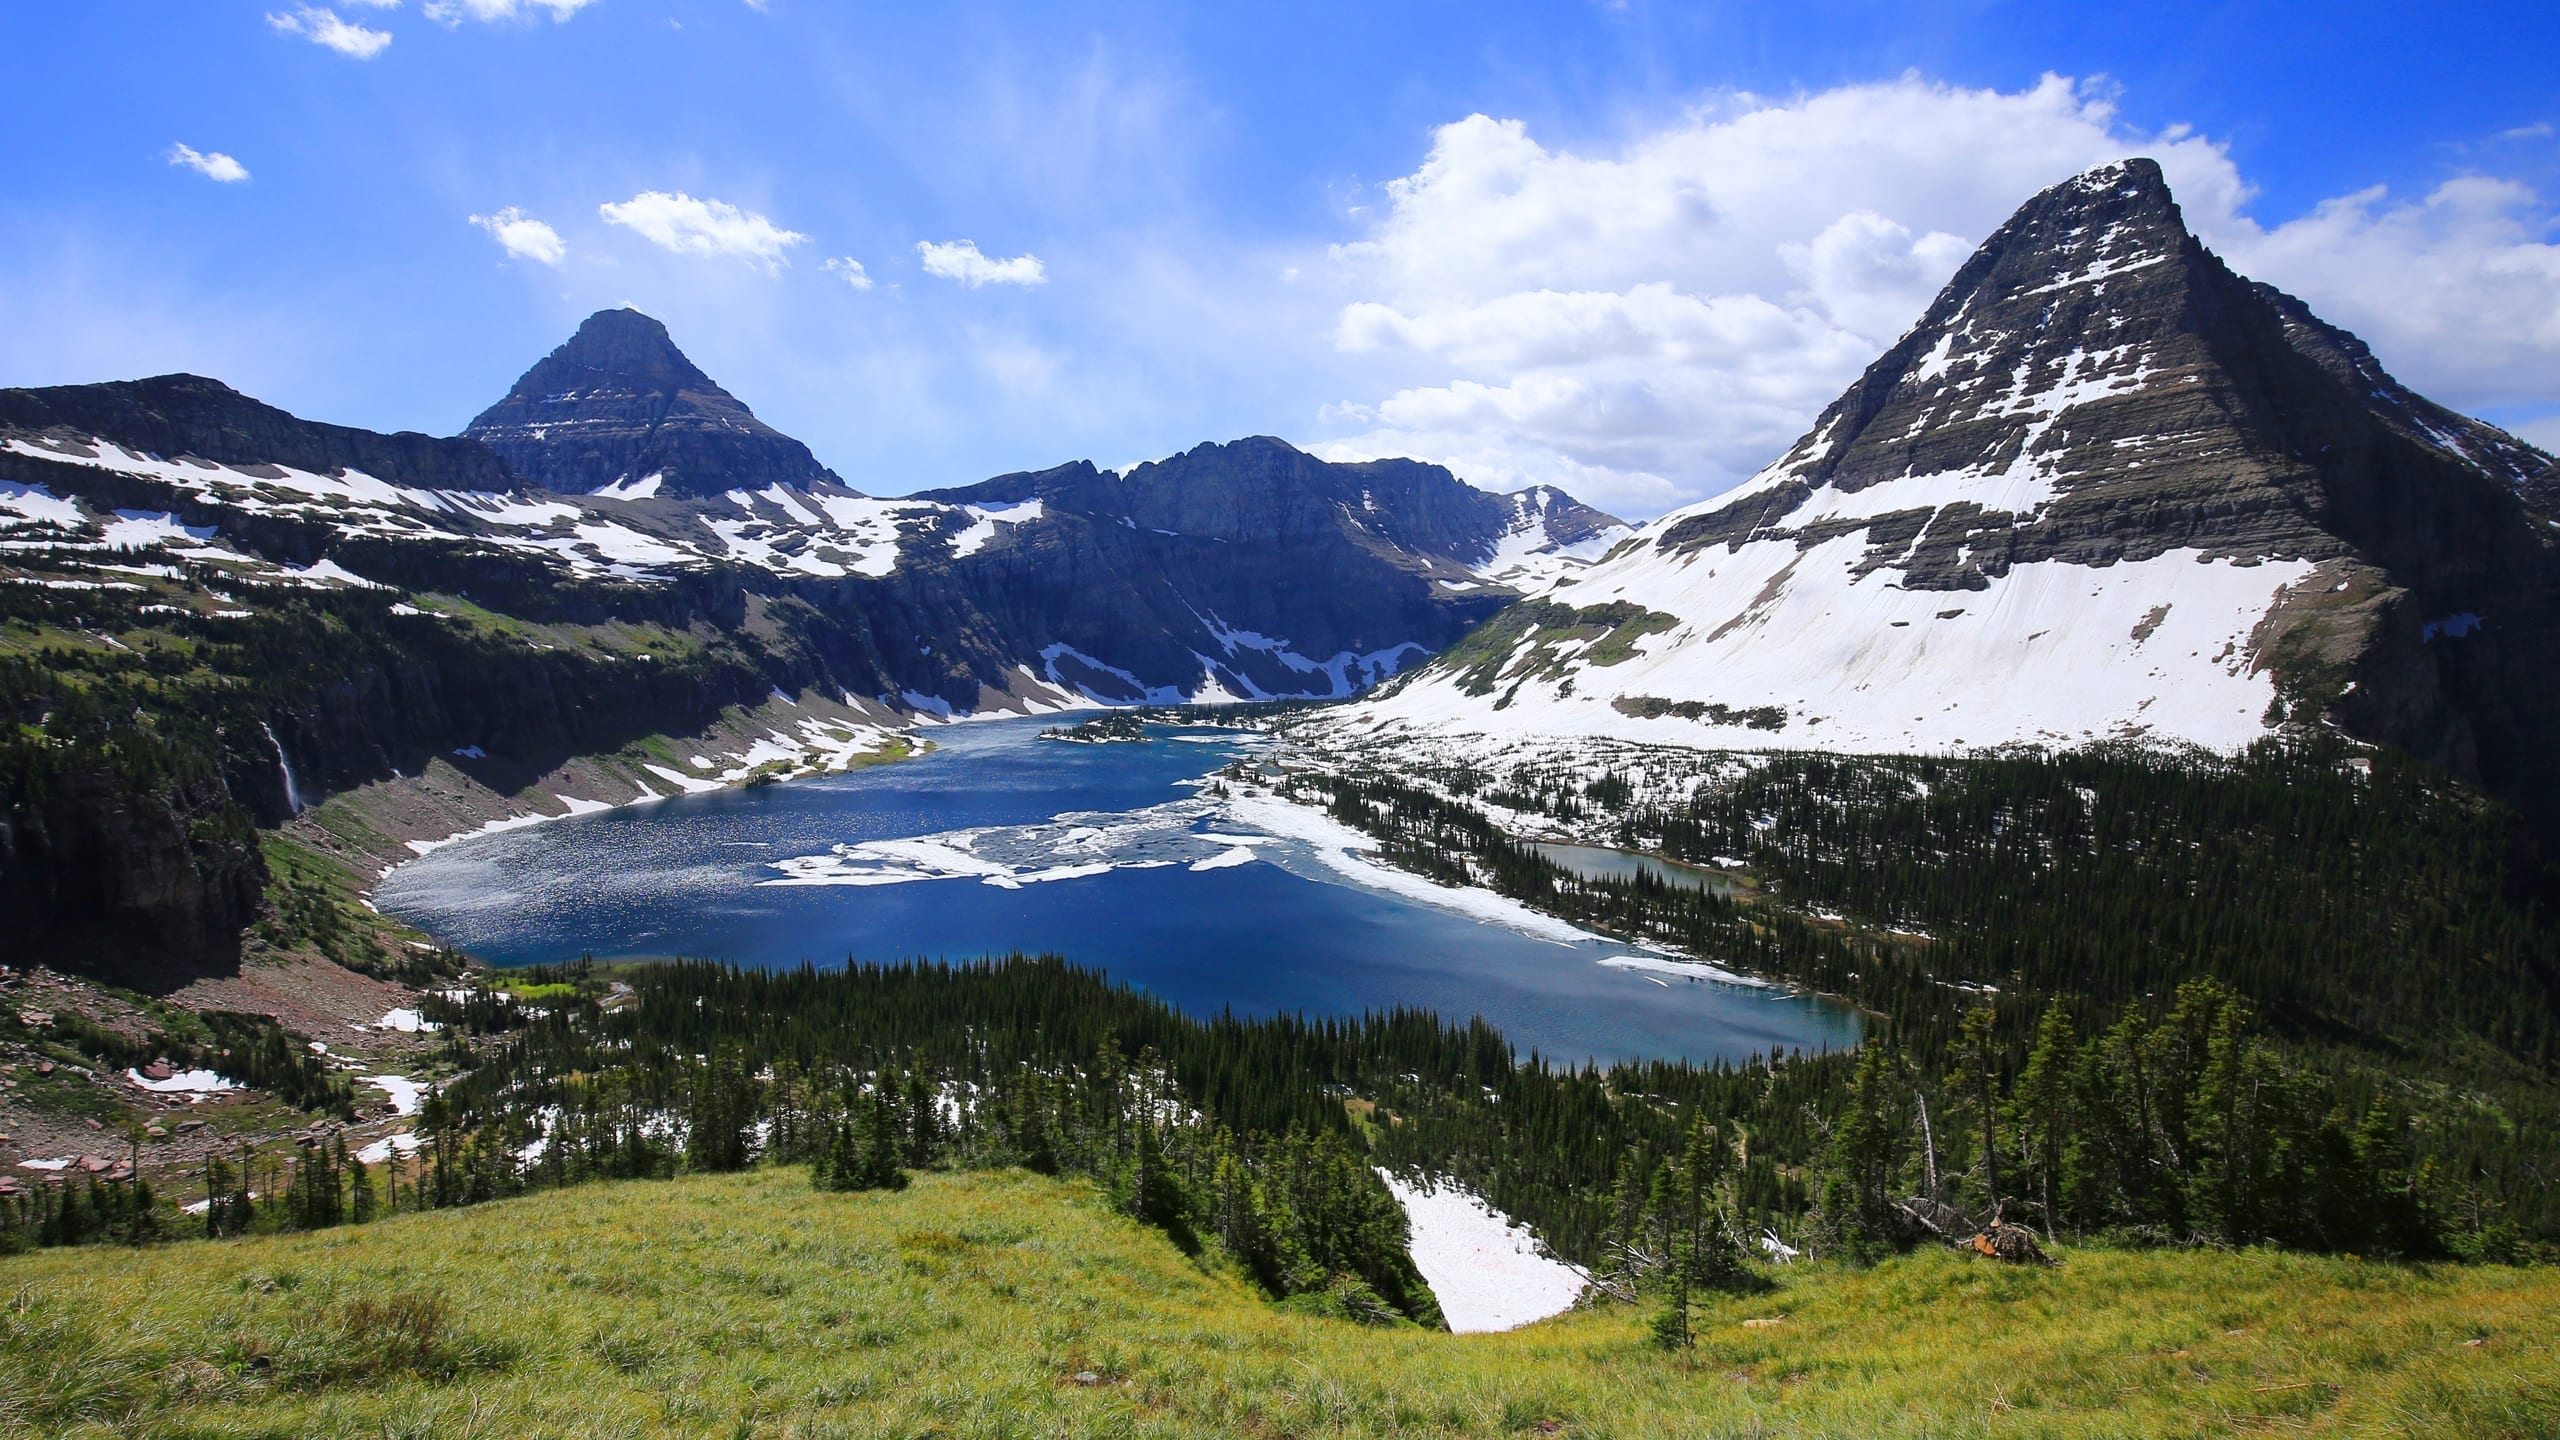 A view of a lake between two snow covered mountains in the beautiful Glacier National Park